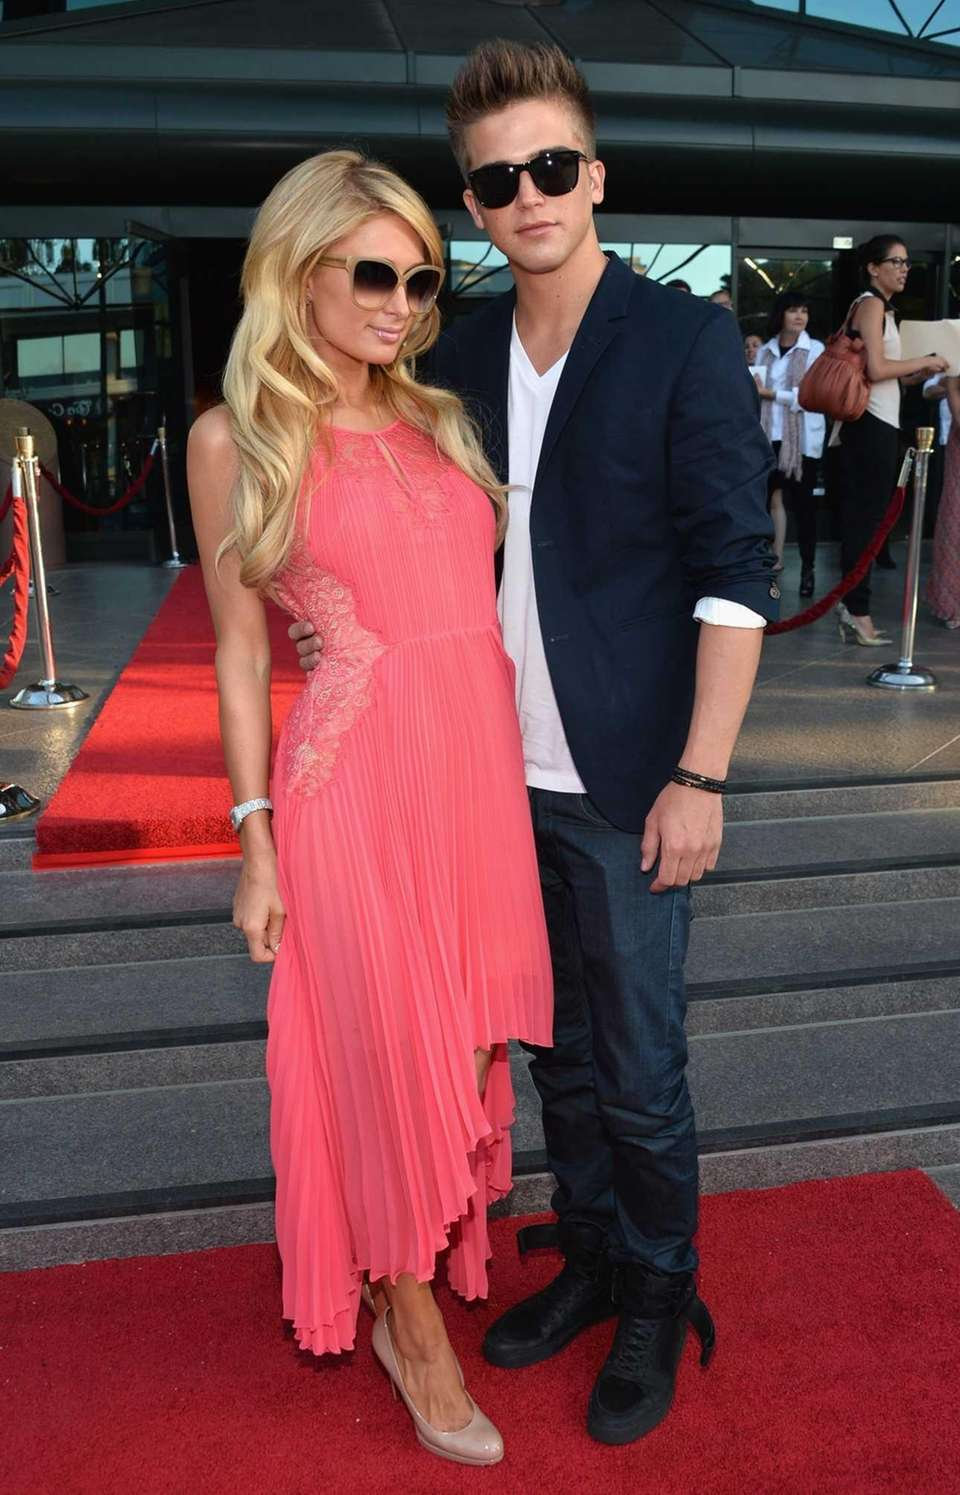 Paris Hilton poses with model River Viiperi at